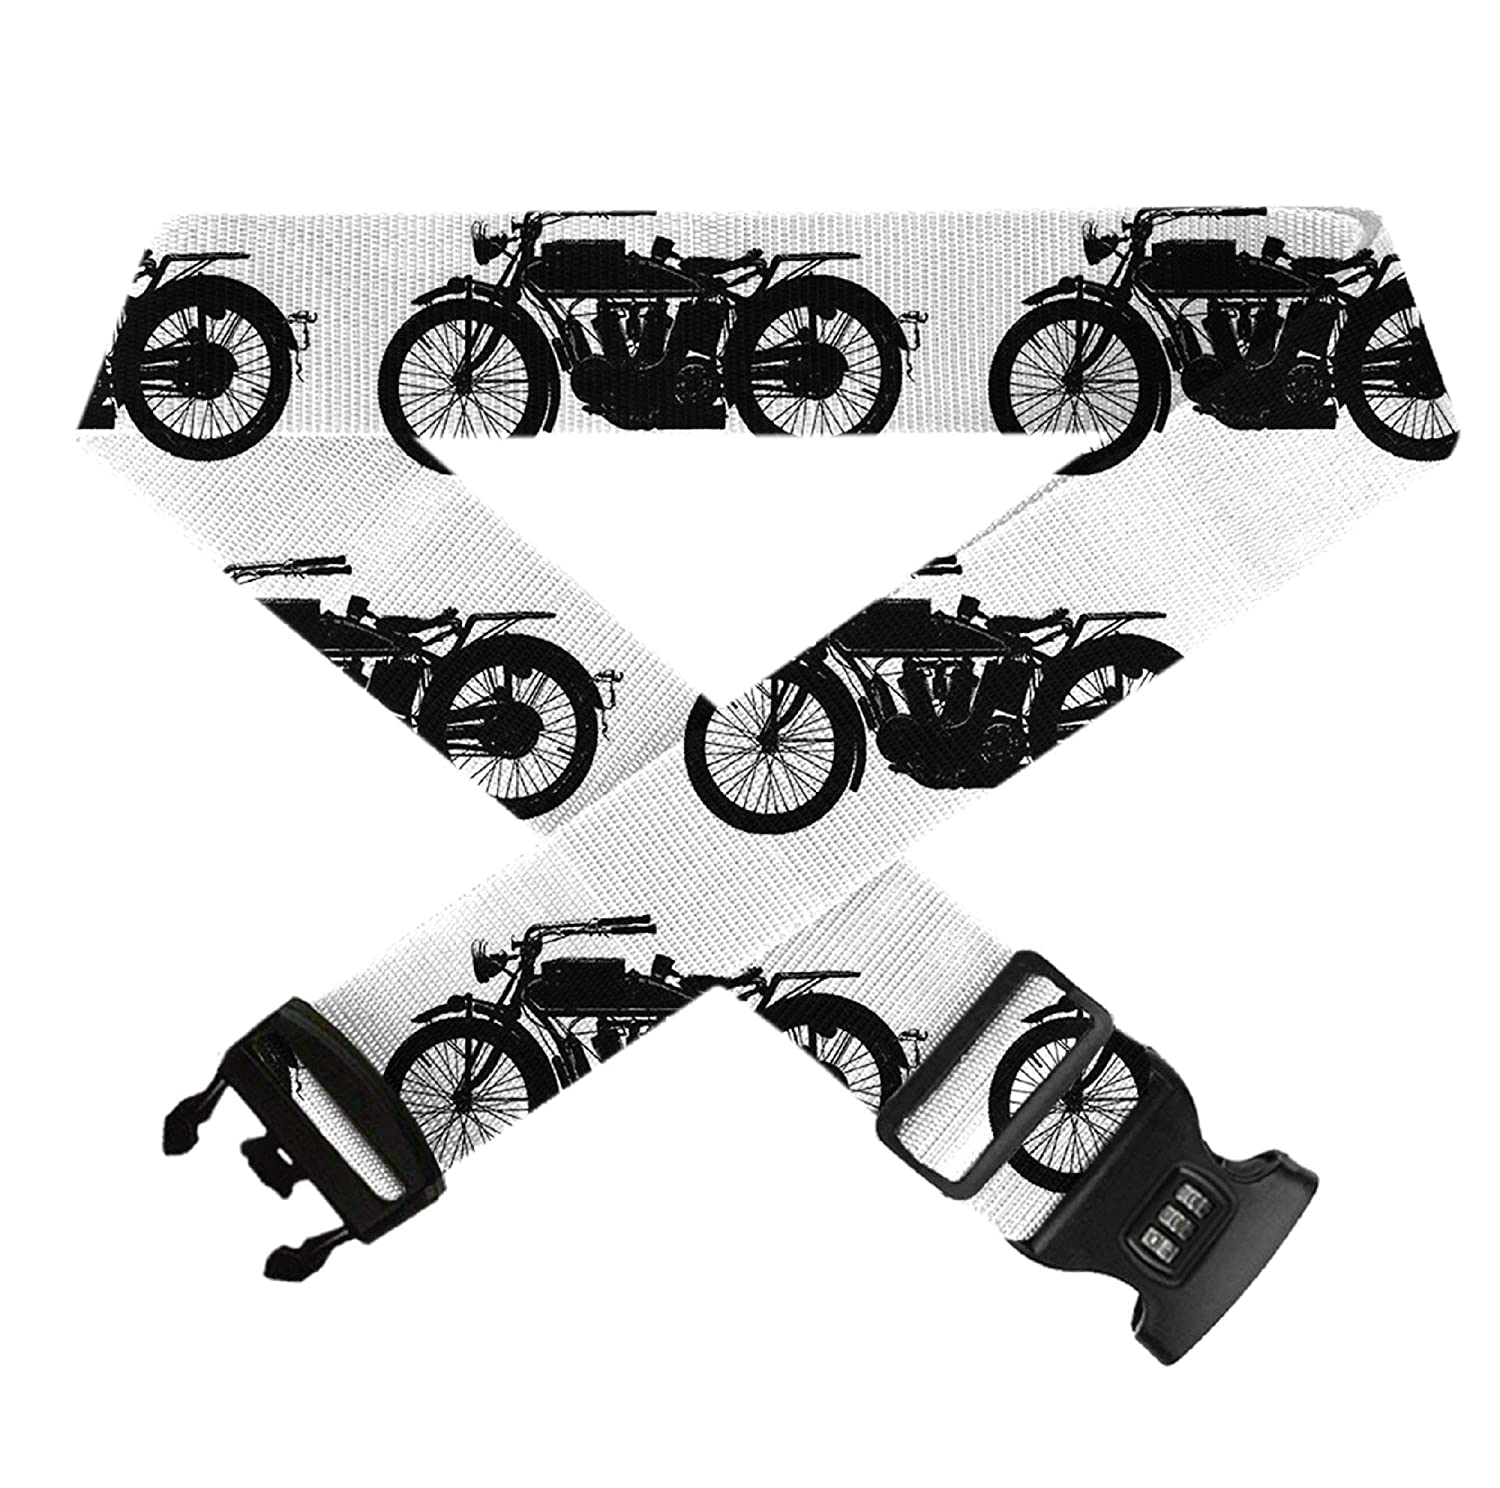 Luggage Straps Adjustable Suitcase Belts with 3 Dial Digit Combination Travel Bag Accessories Cool Crazy Antique Motorcycle Pattern